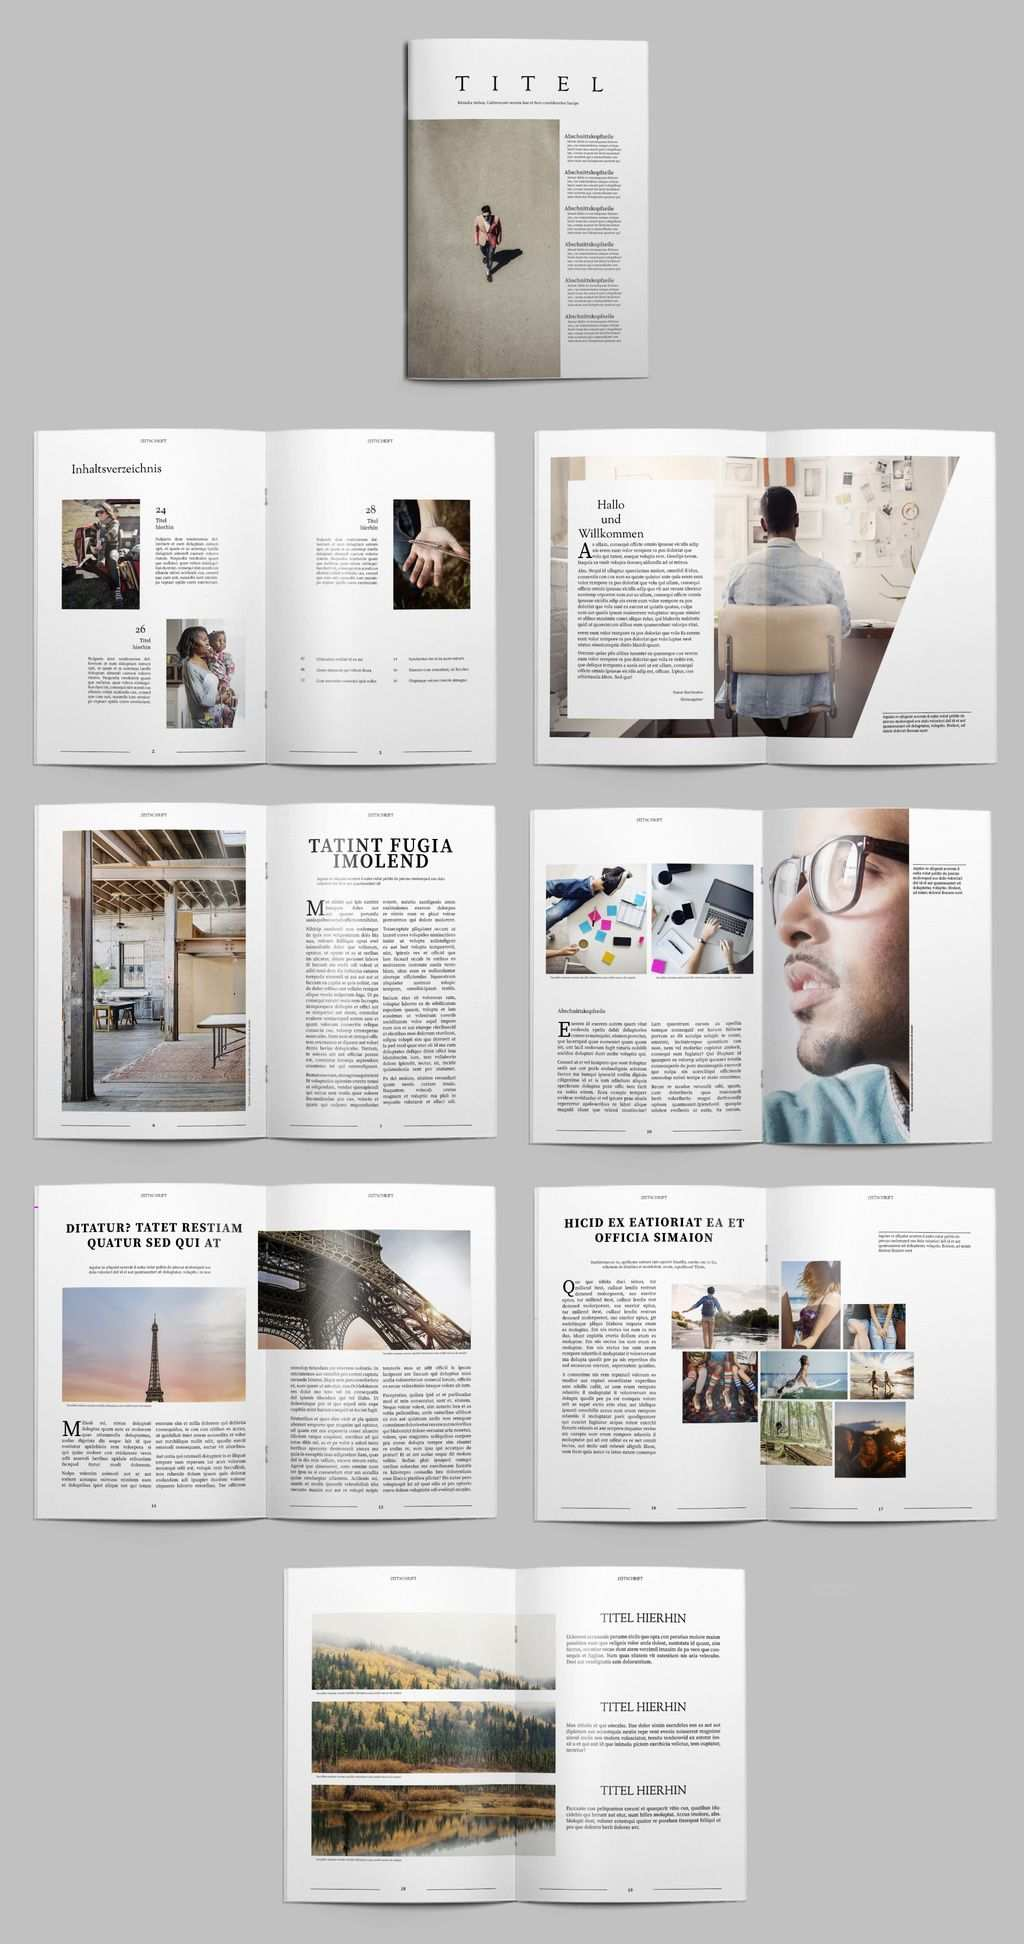 Kostenlose Indesign Vorlagen Fur Magazine Creative Blog By Adobe Indesign Vorlagen Bookletgestaltung Indesign Vorlage